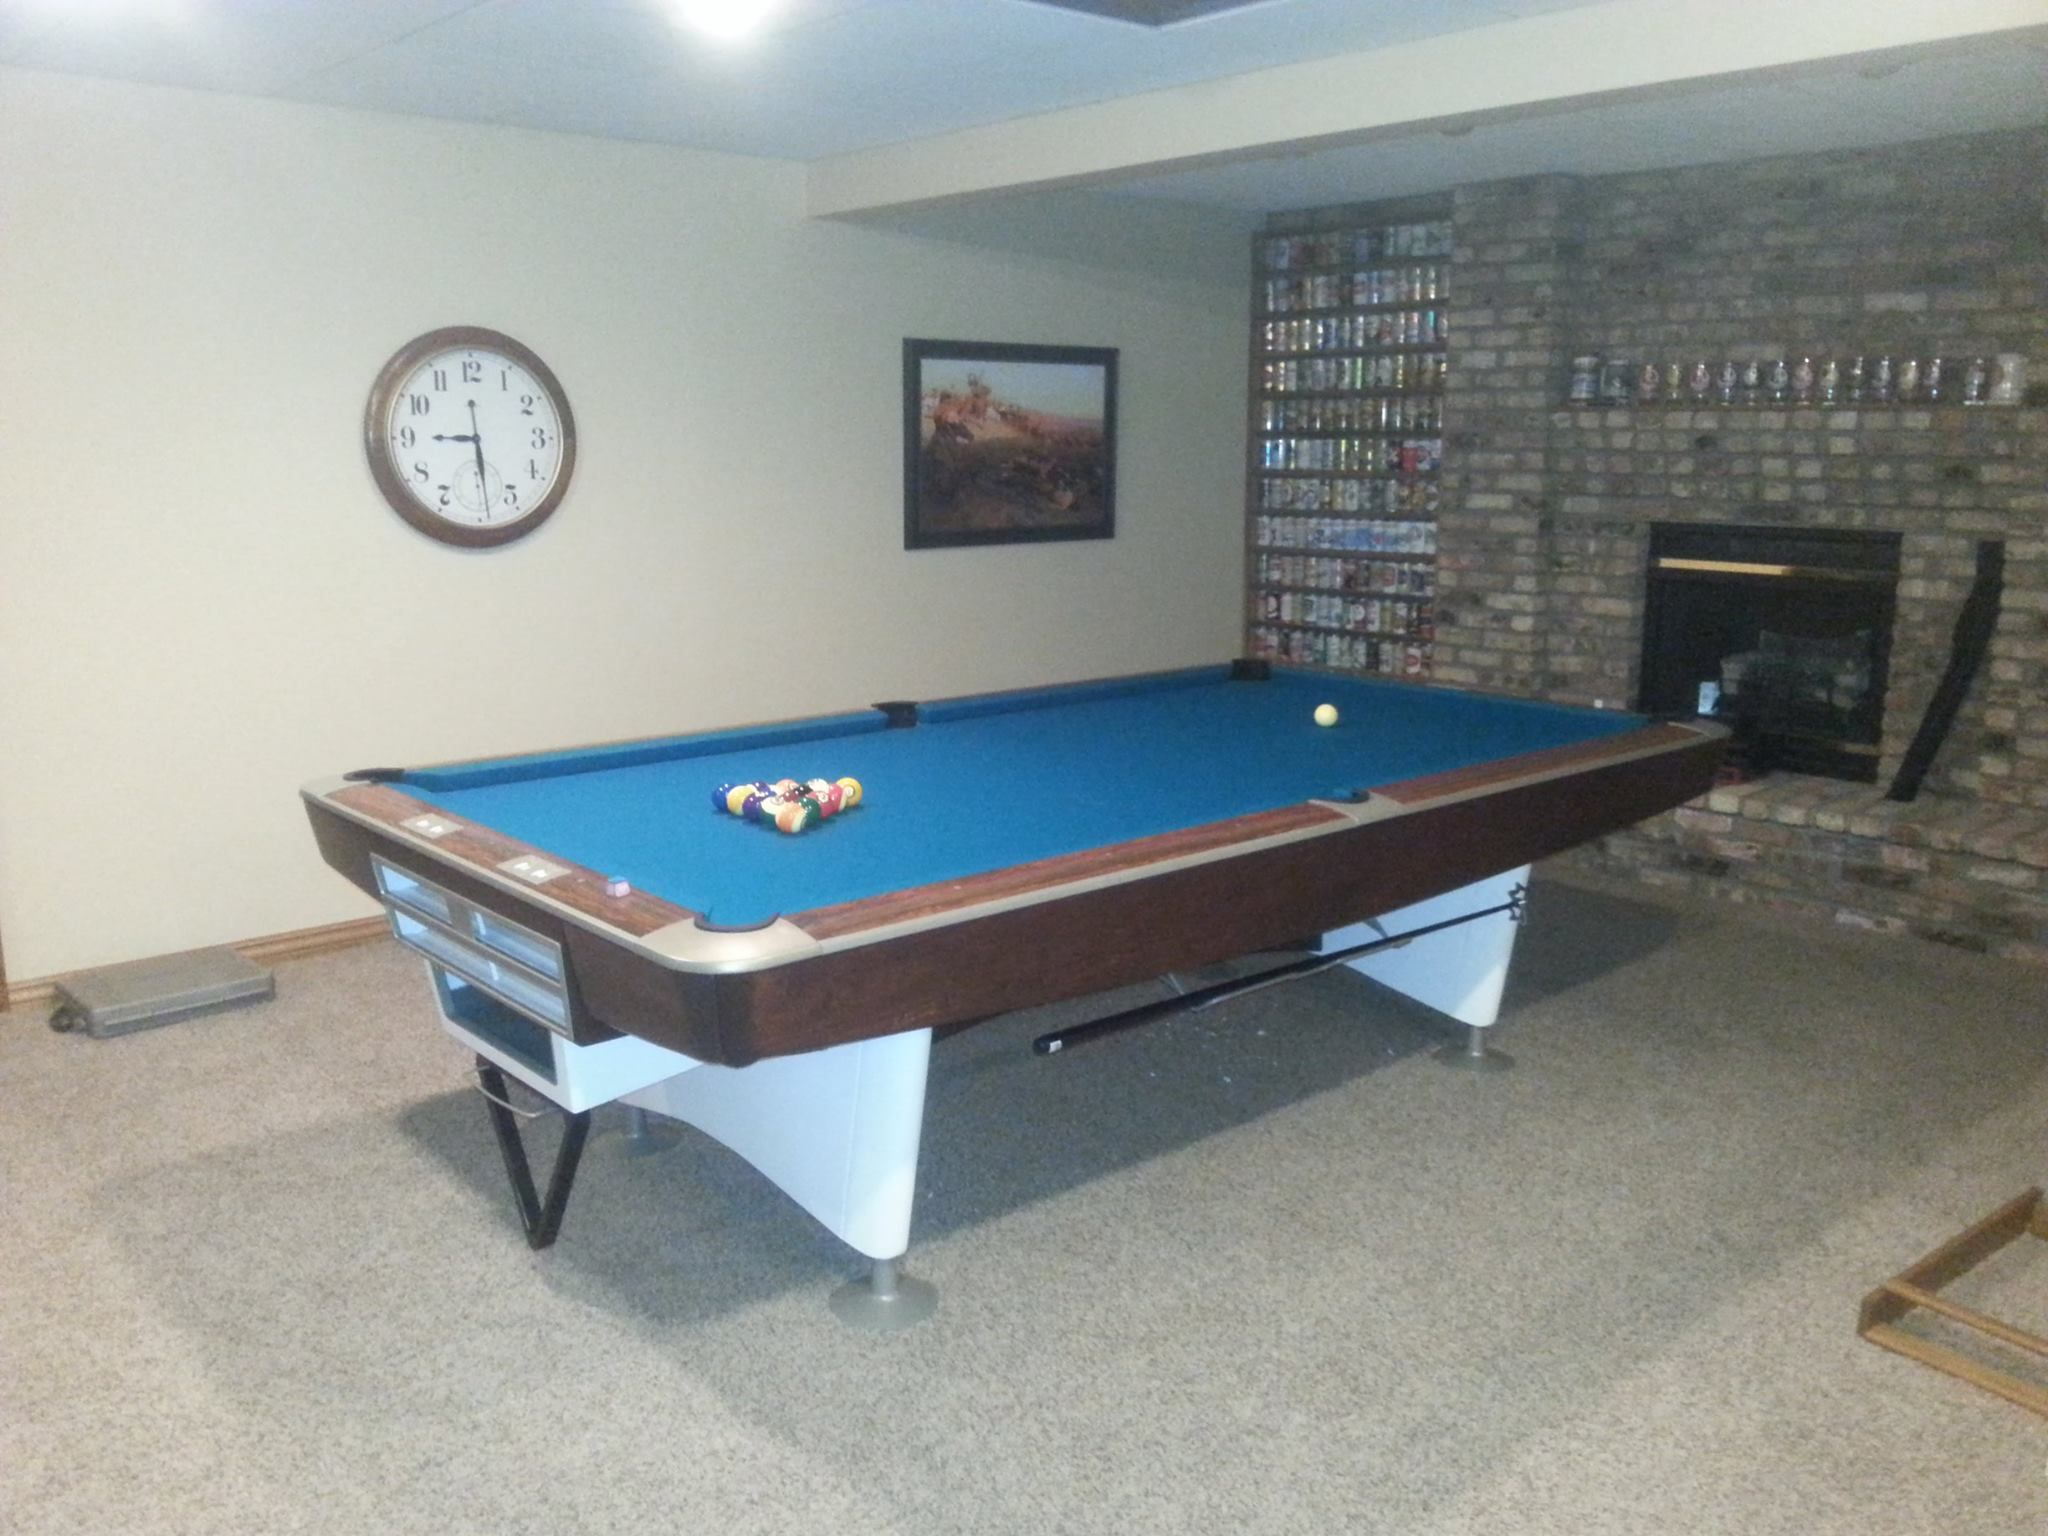 Restoration Completed By 8 On The Break Toledo Ohio This Table